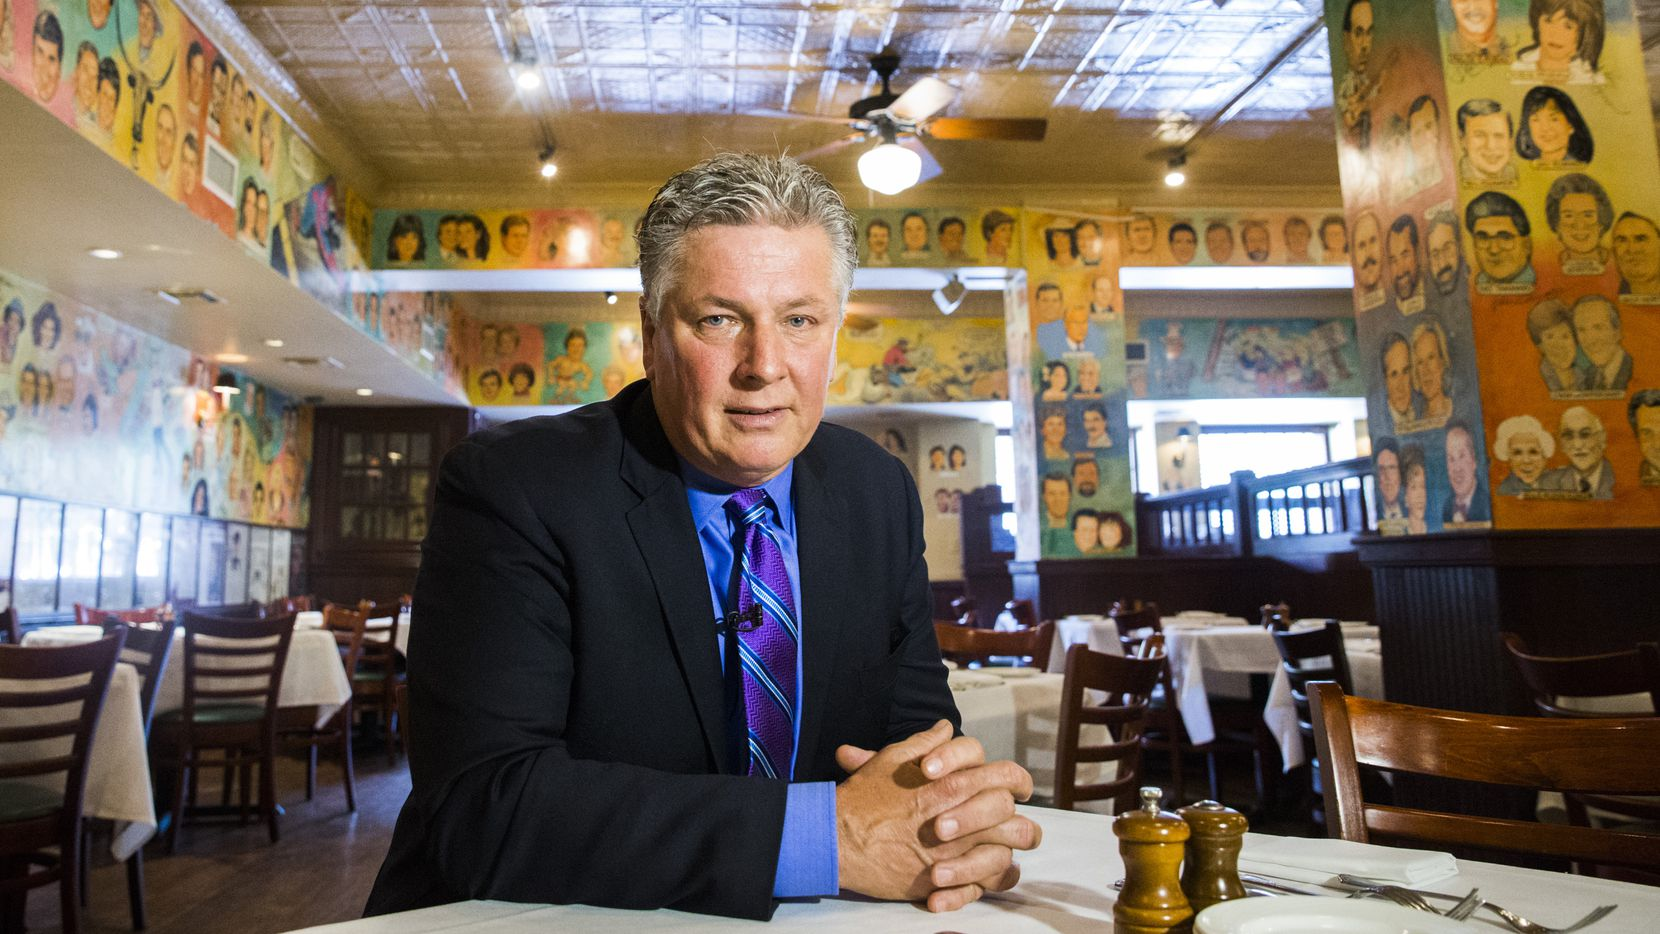 Al Biernat, former manager of The Palm restaurant, poses for a portrait among the restaurant's signature caricatures on Tuesday, June 20, 2017 at The Palm in downtown Dallas. Most of the caricatures were created by artist Bill Lignante. The restaurant will close it's doors on June 30. (Ashley Landis/The Dallas Morning News)